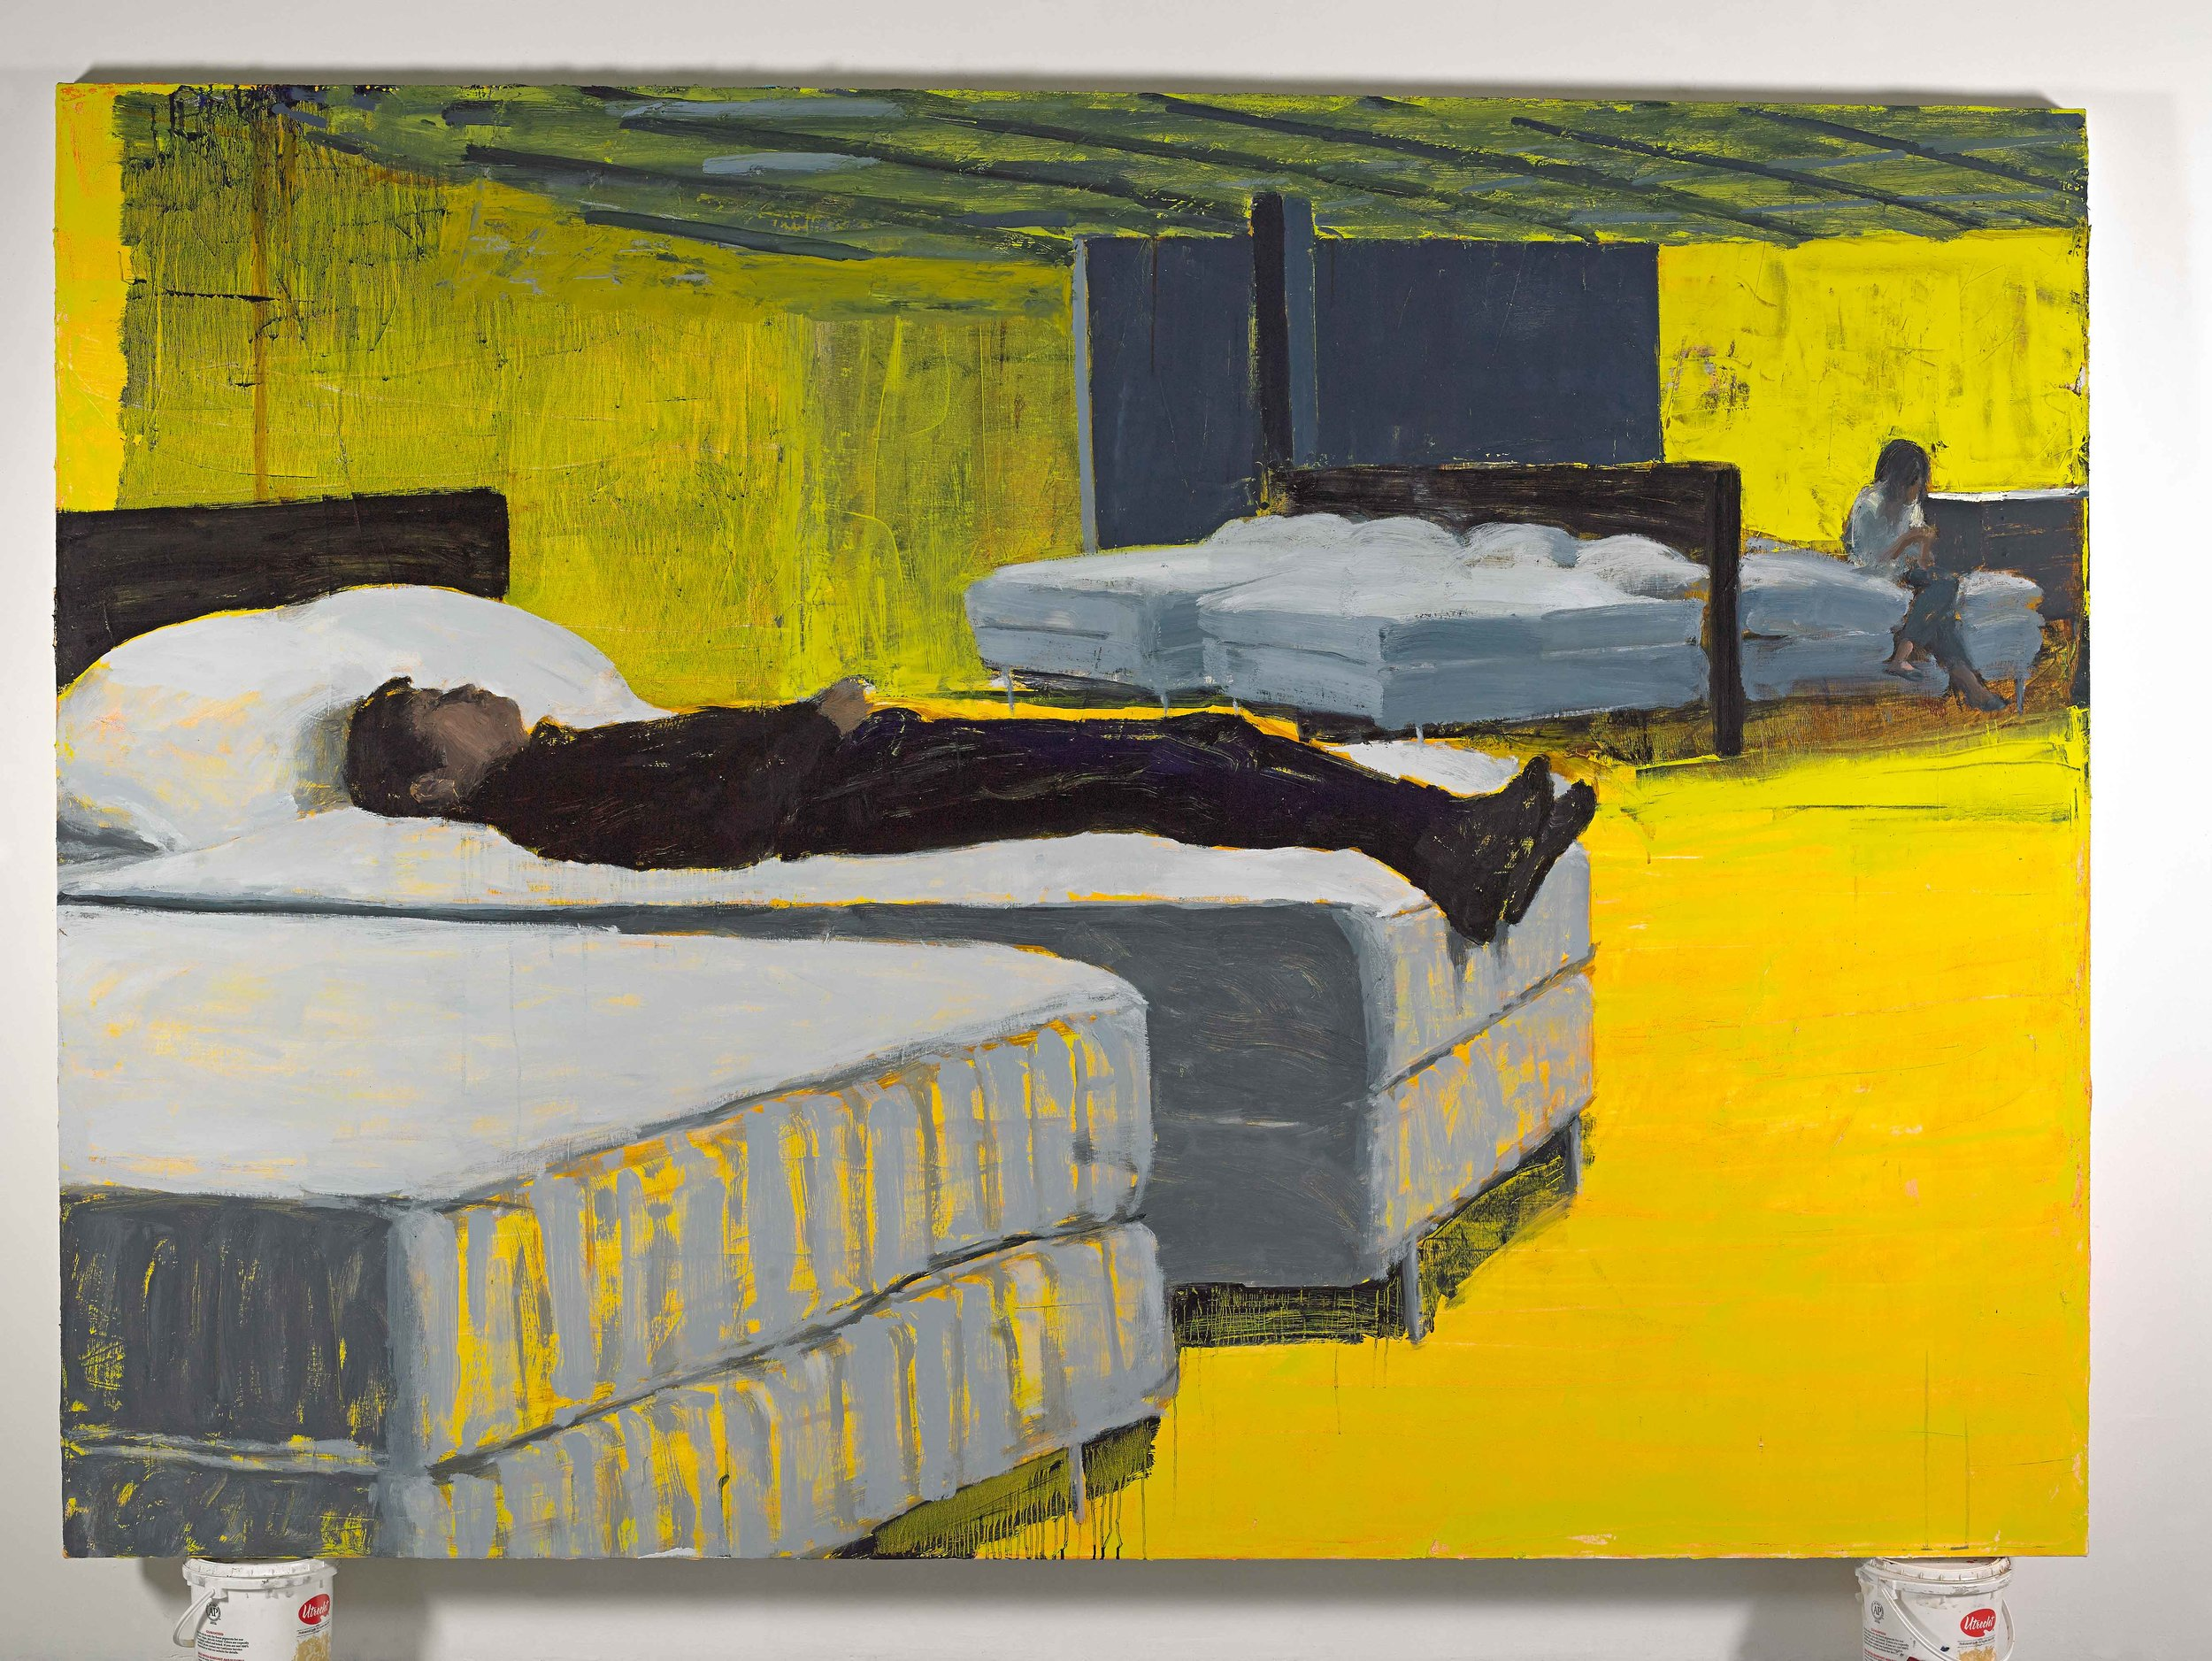 "Ikea/Bedroom, 72""x100"", oil on canvas, 2014"